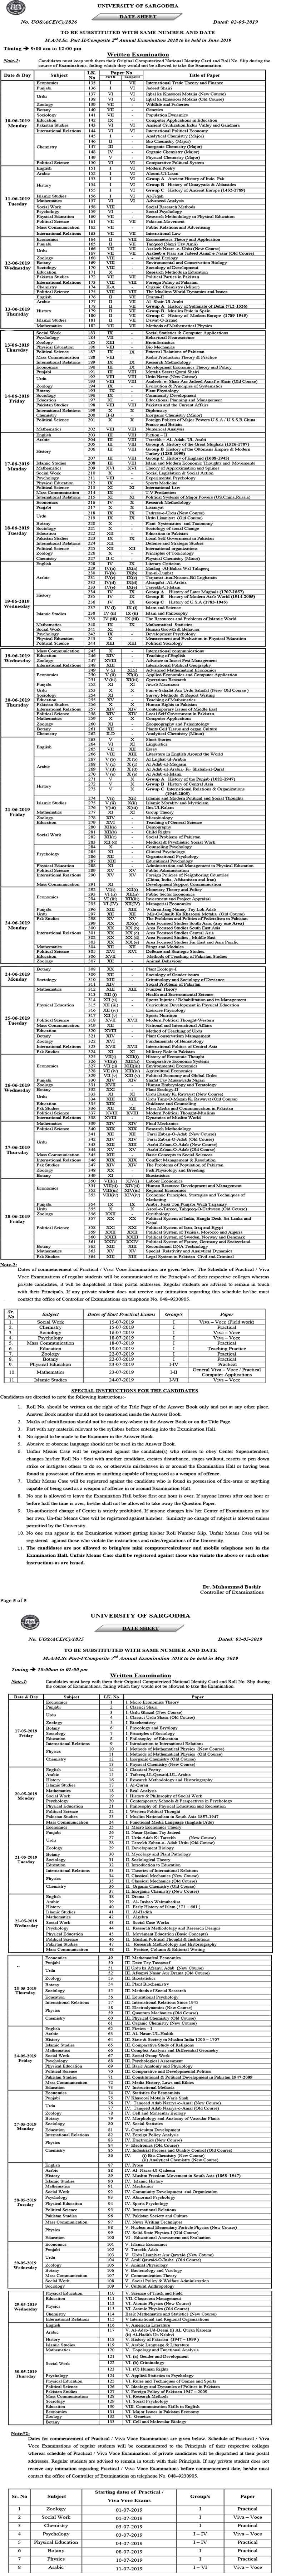 Gcuf Admission For Private Candidates 2019 Last Date